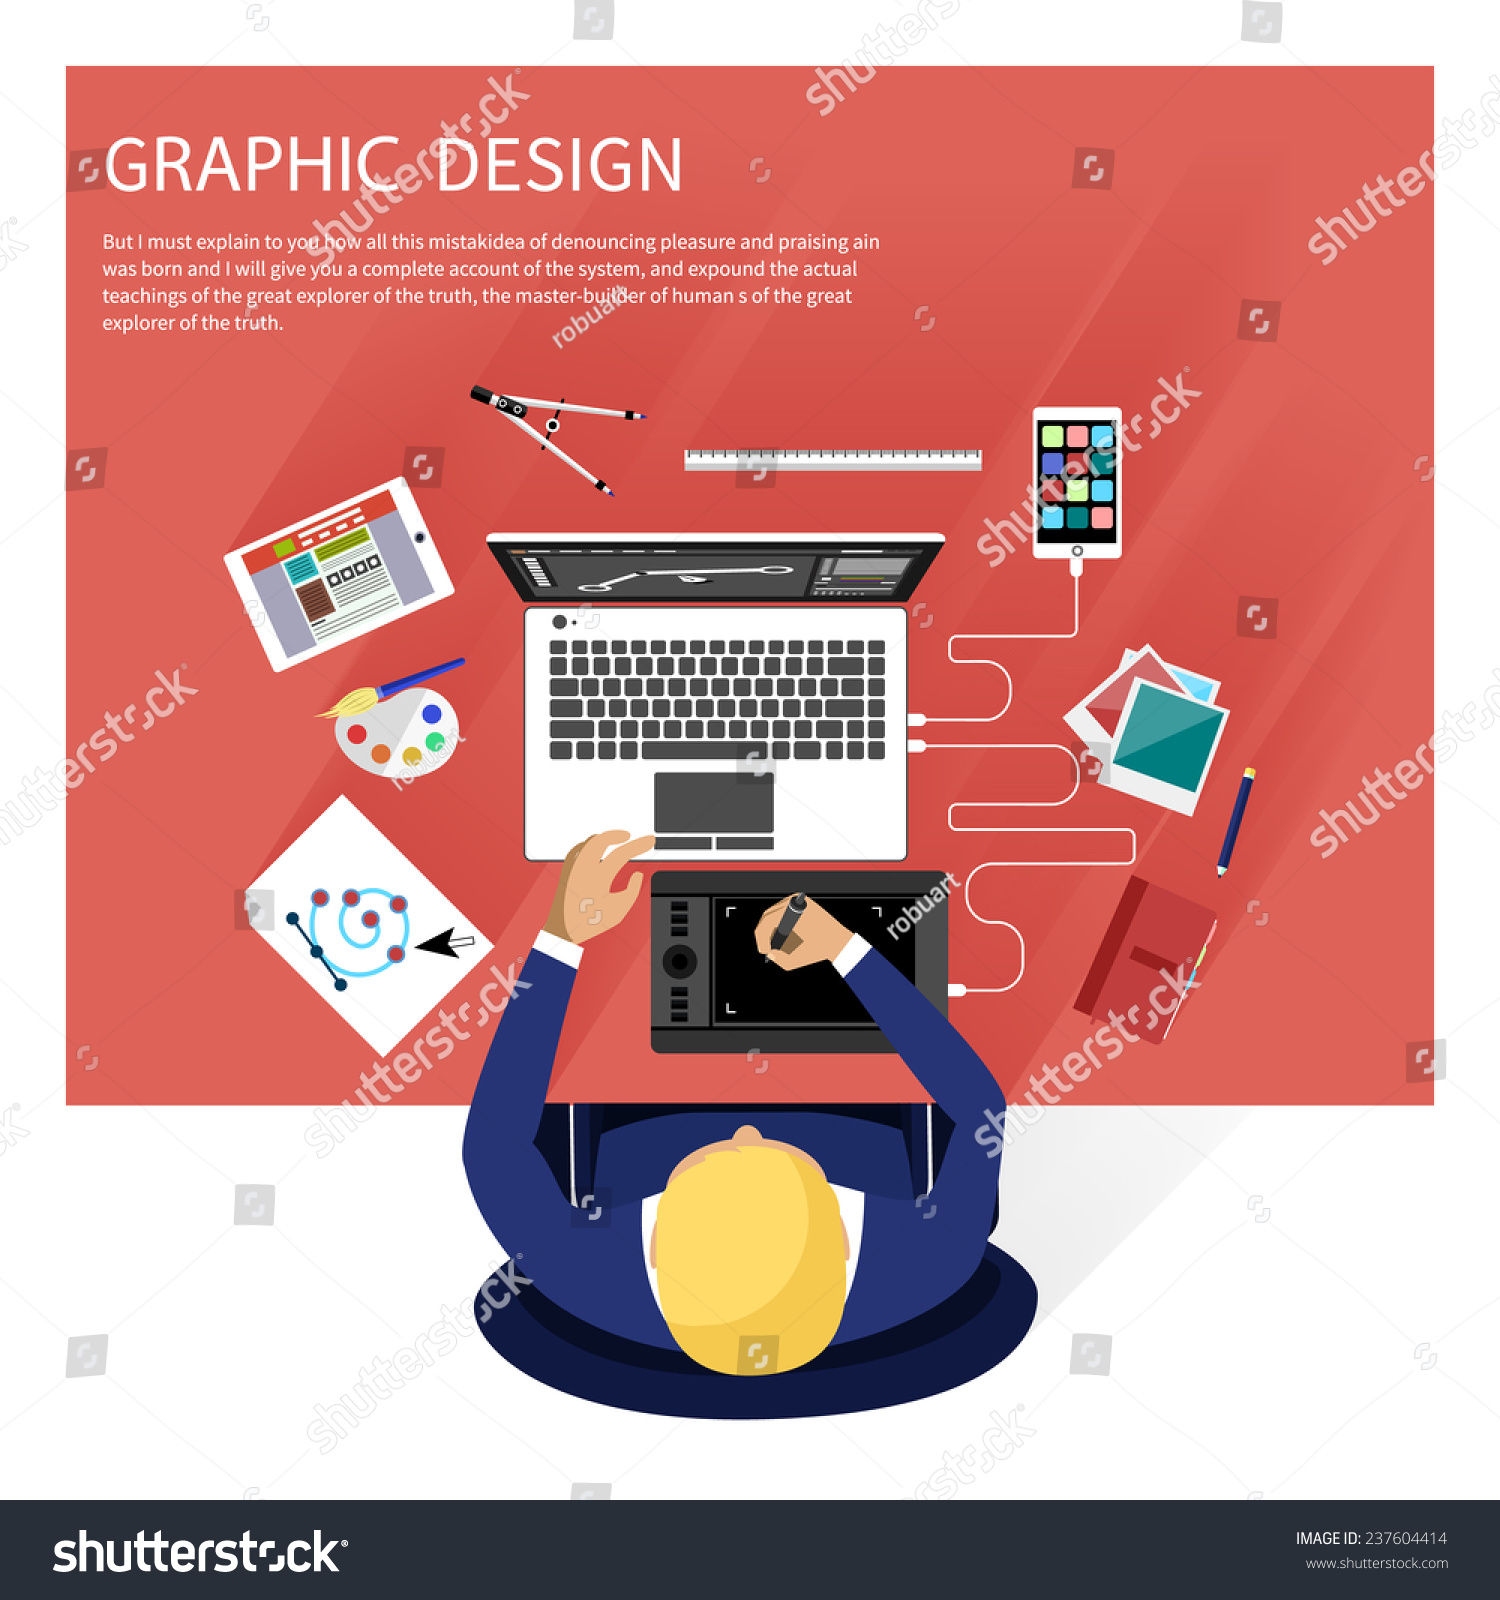 Concept graphic design designer tools software stock for Application design tools